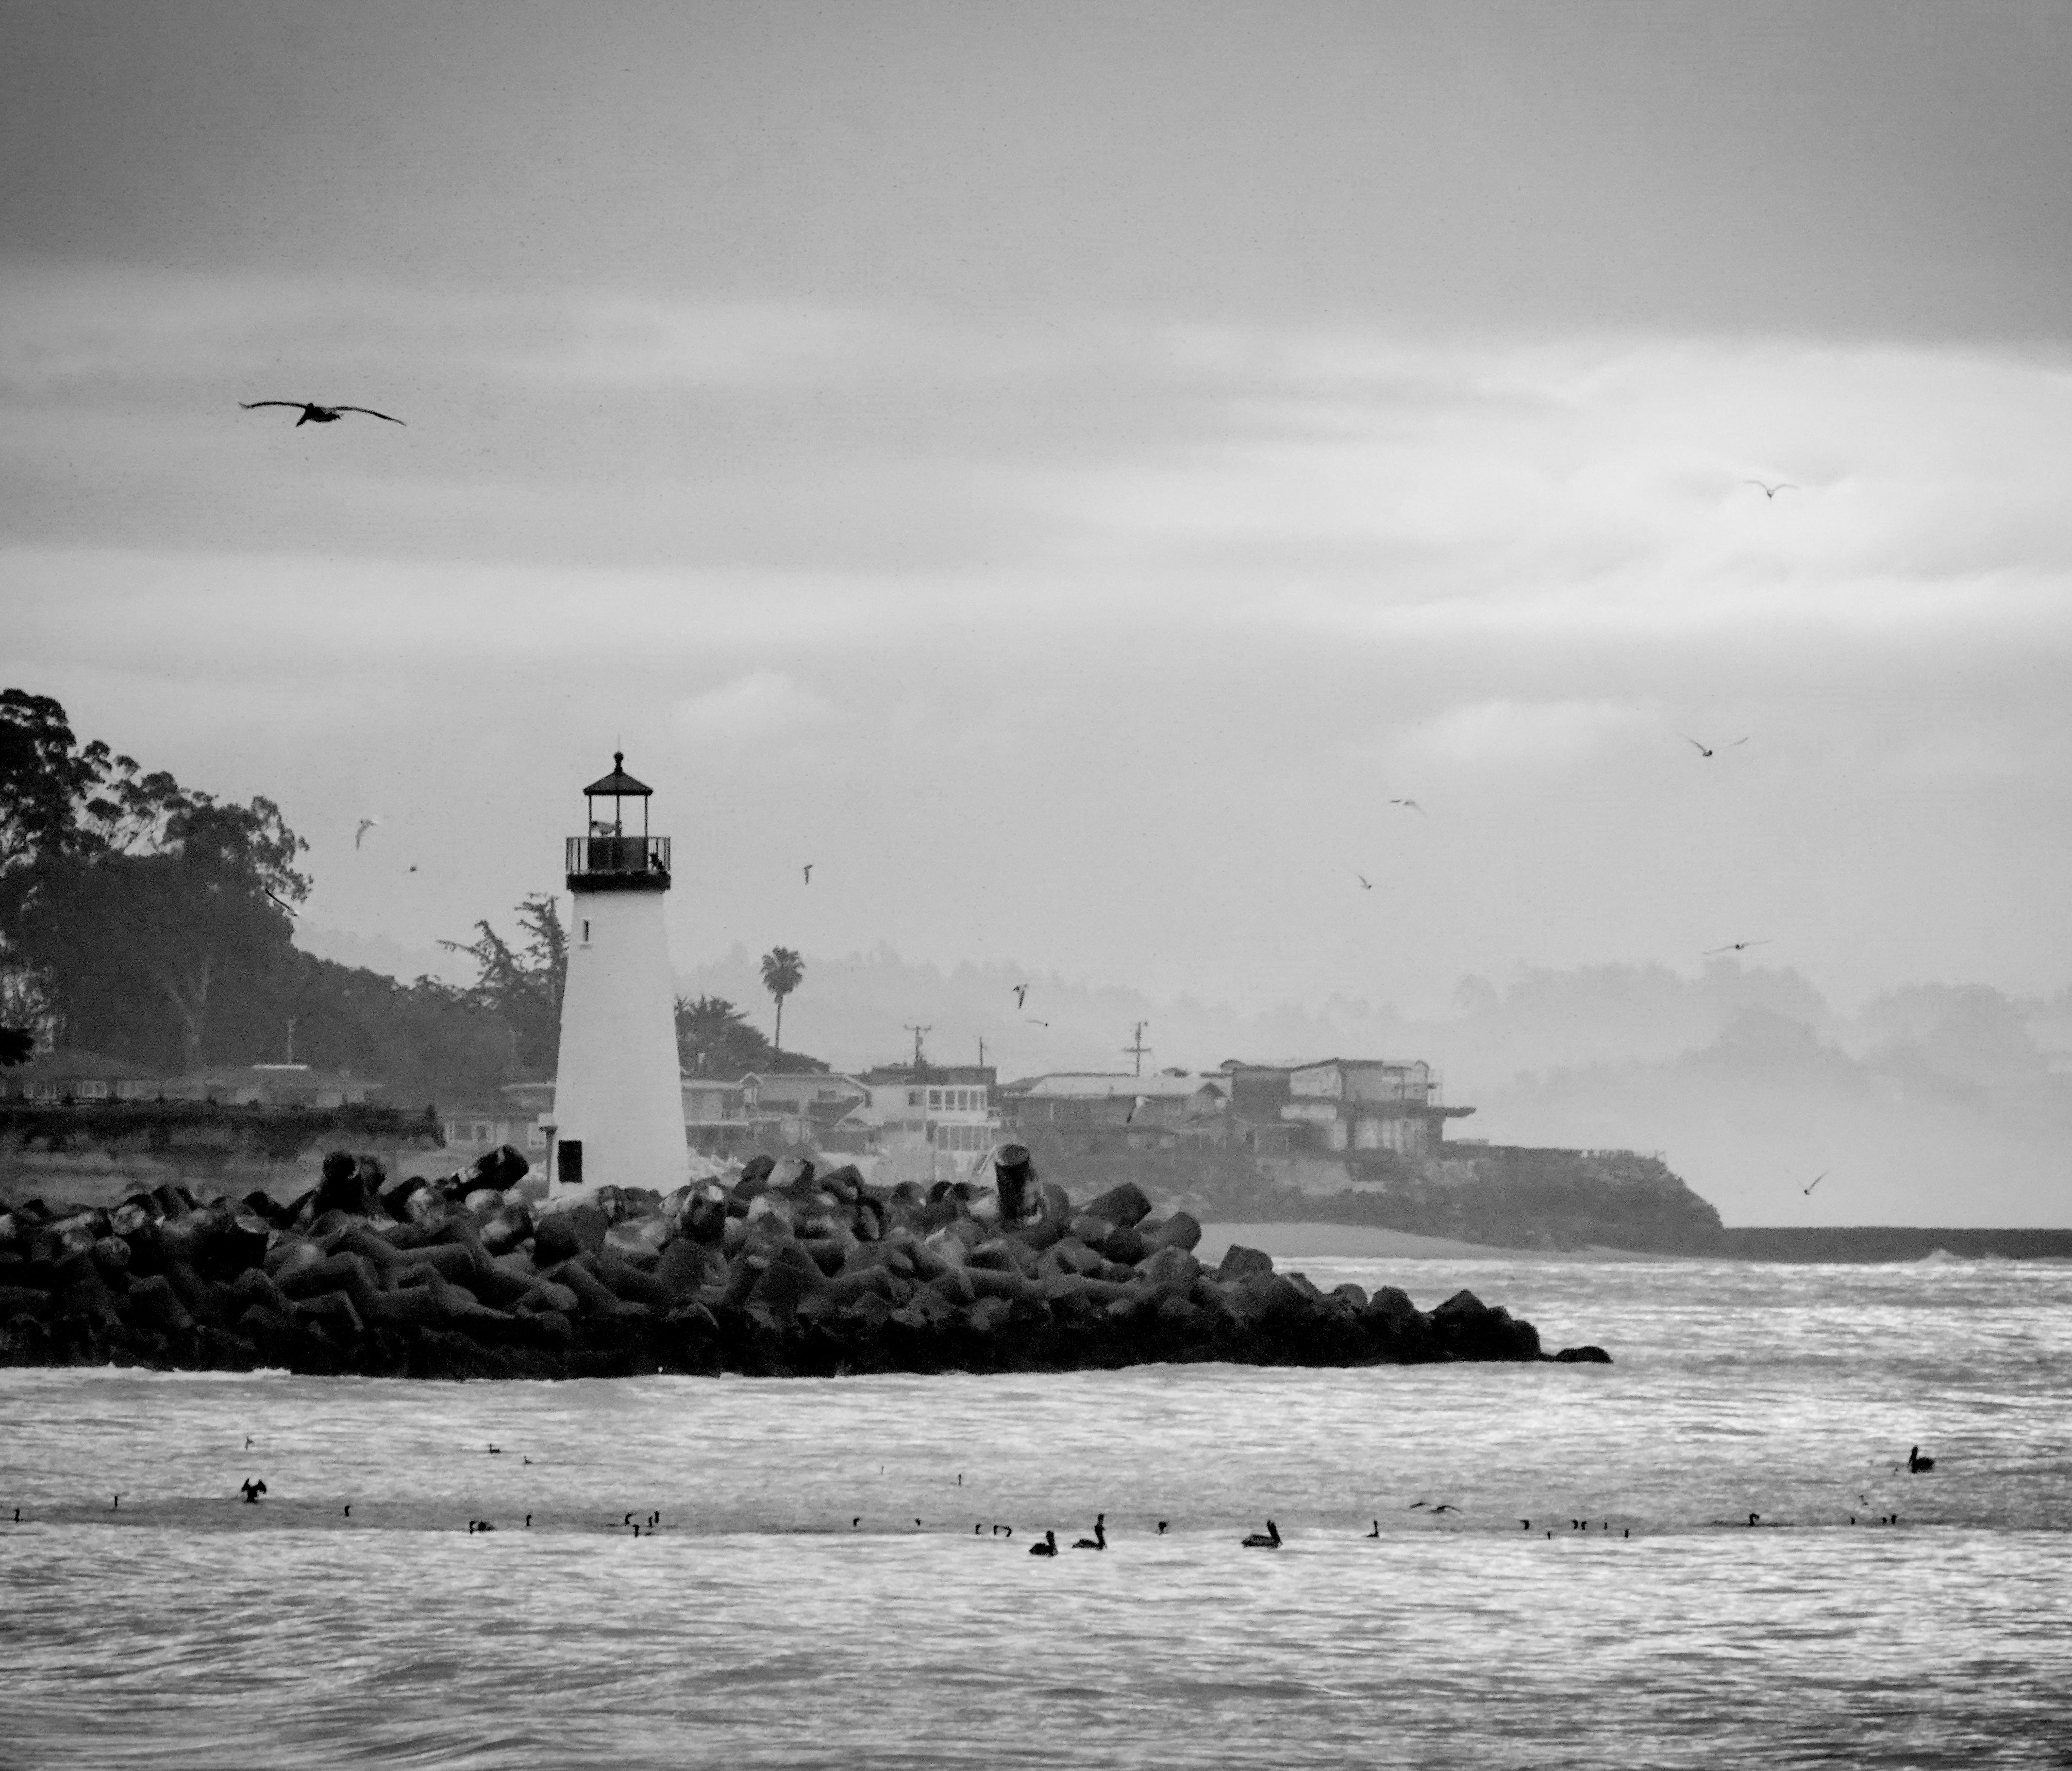 The Walton Lighthouse at the mouth of the Santa Cruz harbor